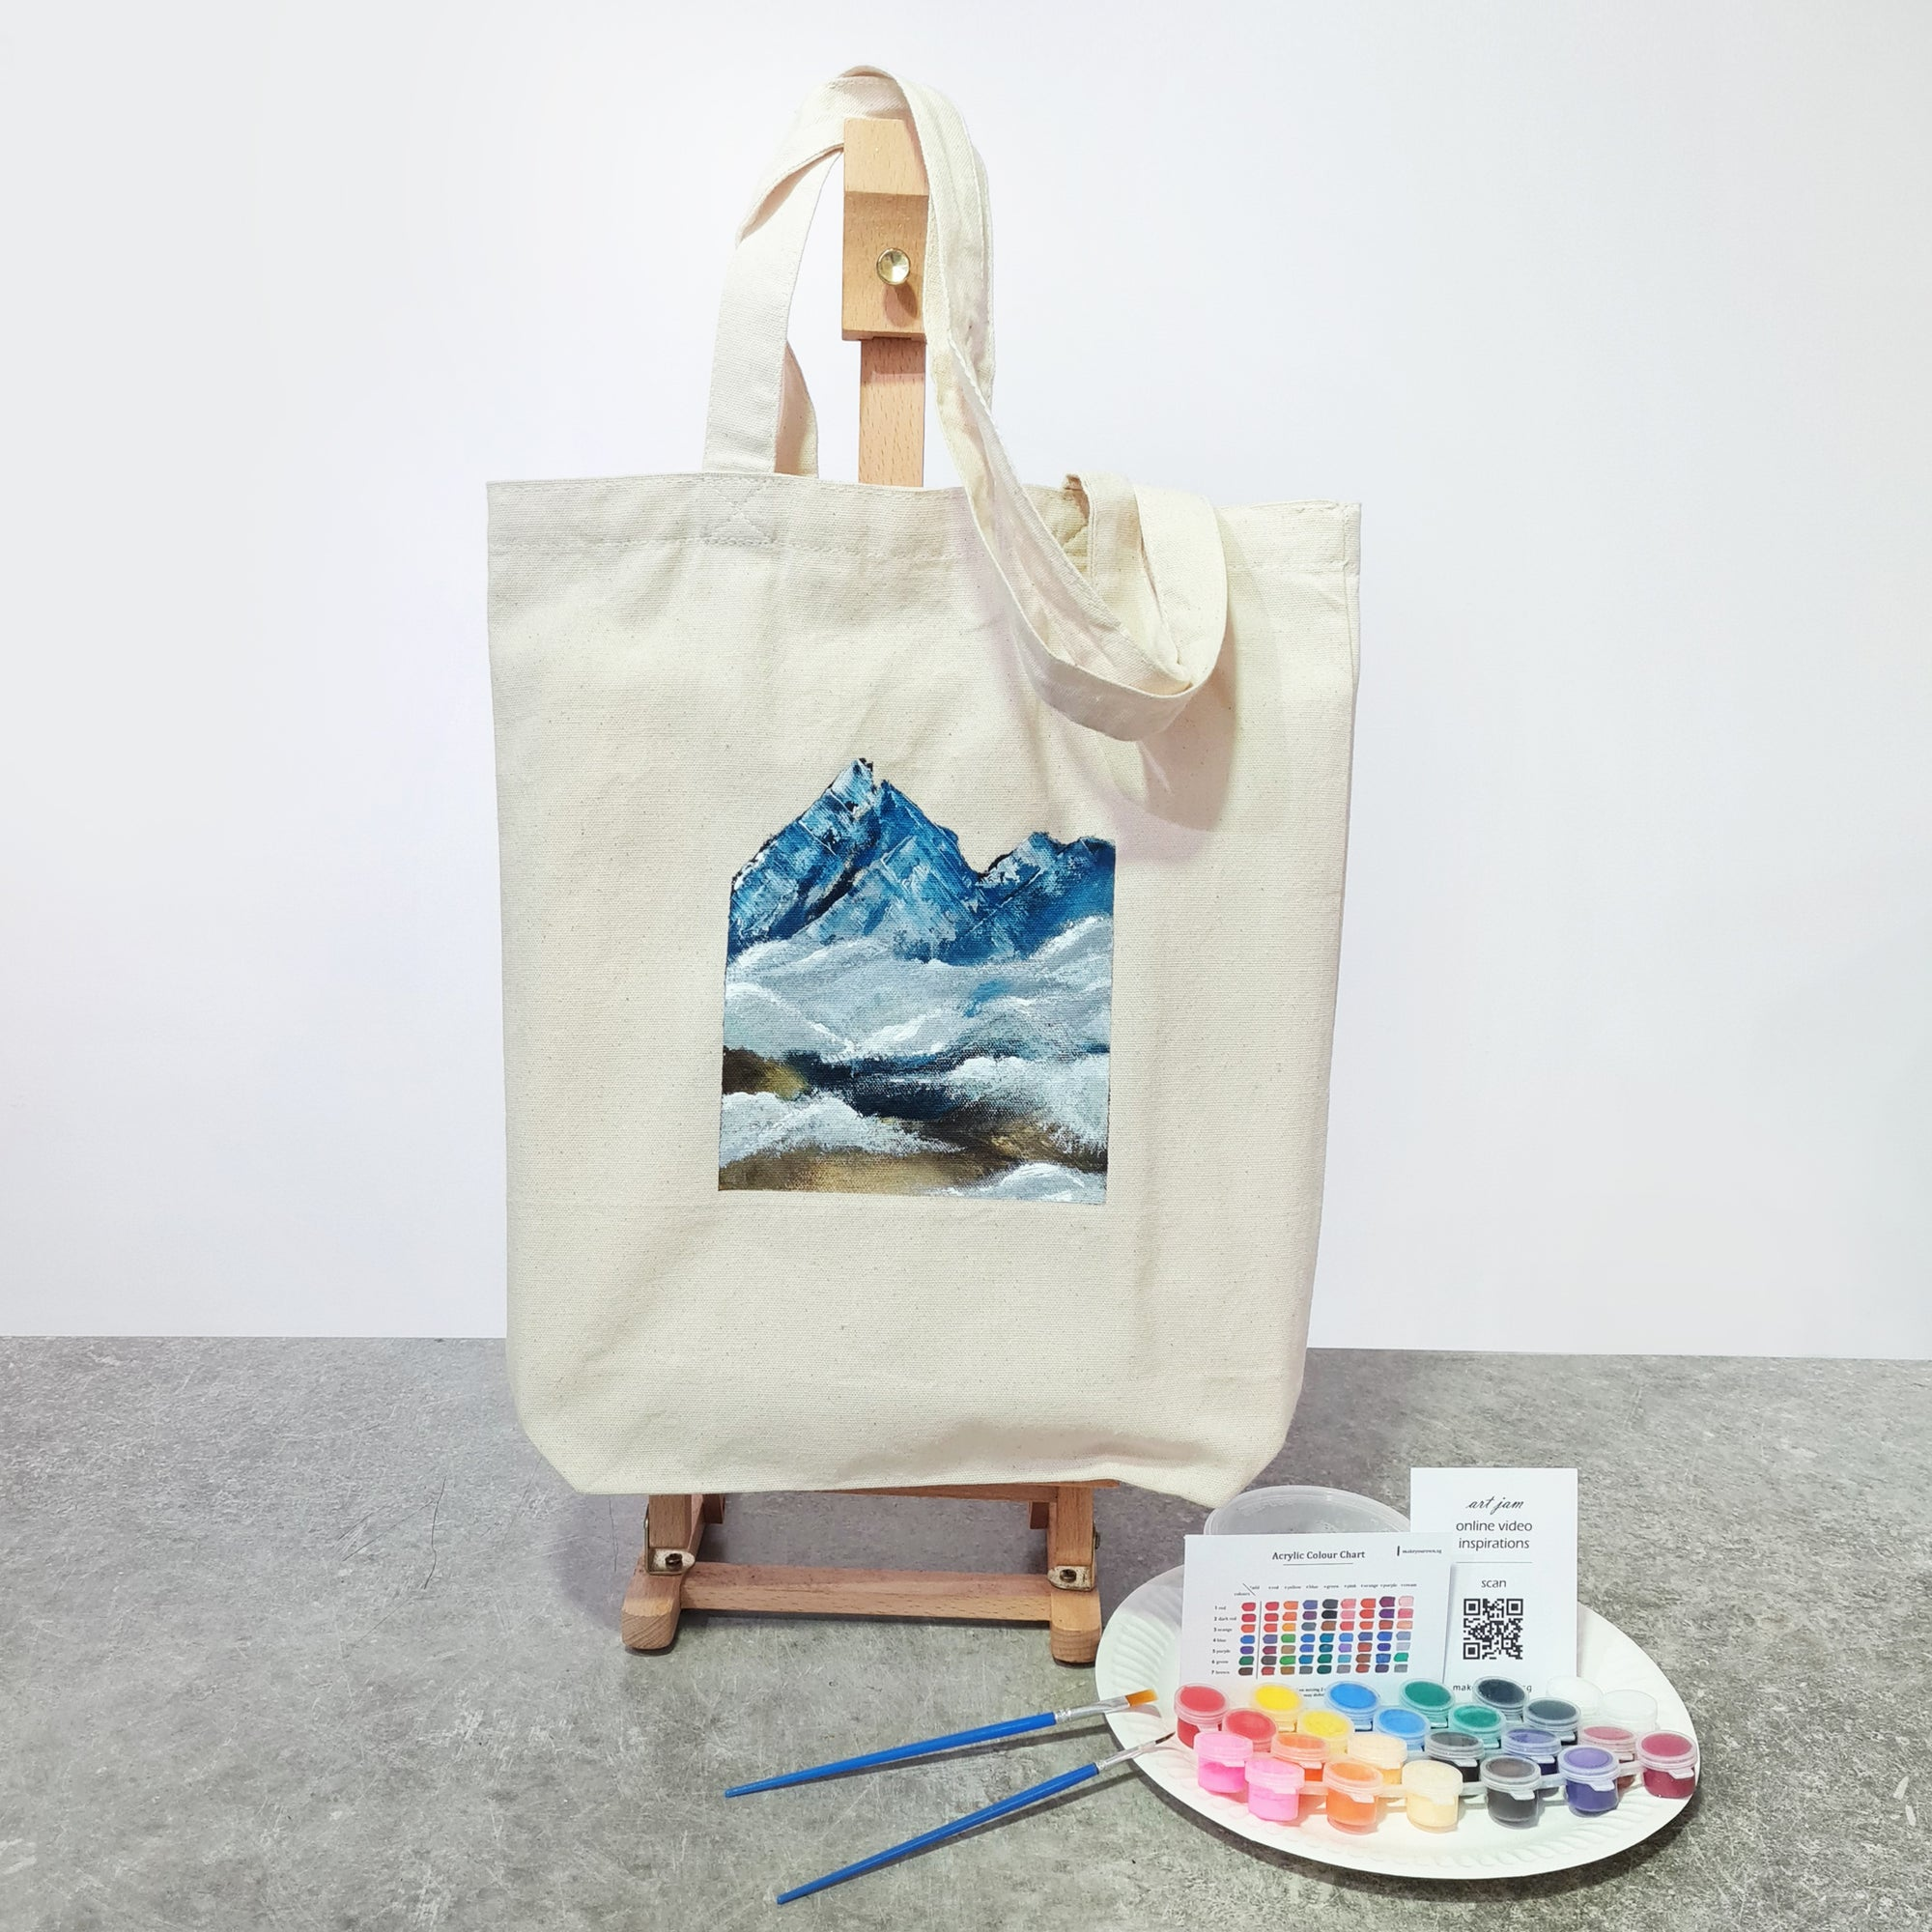 Art Jam - Tote Bag DIY kit